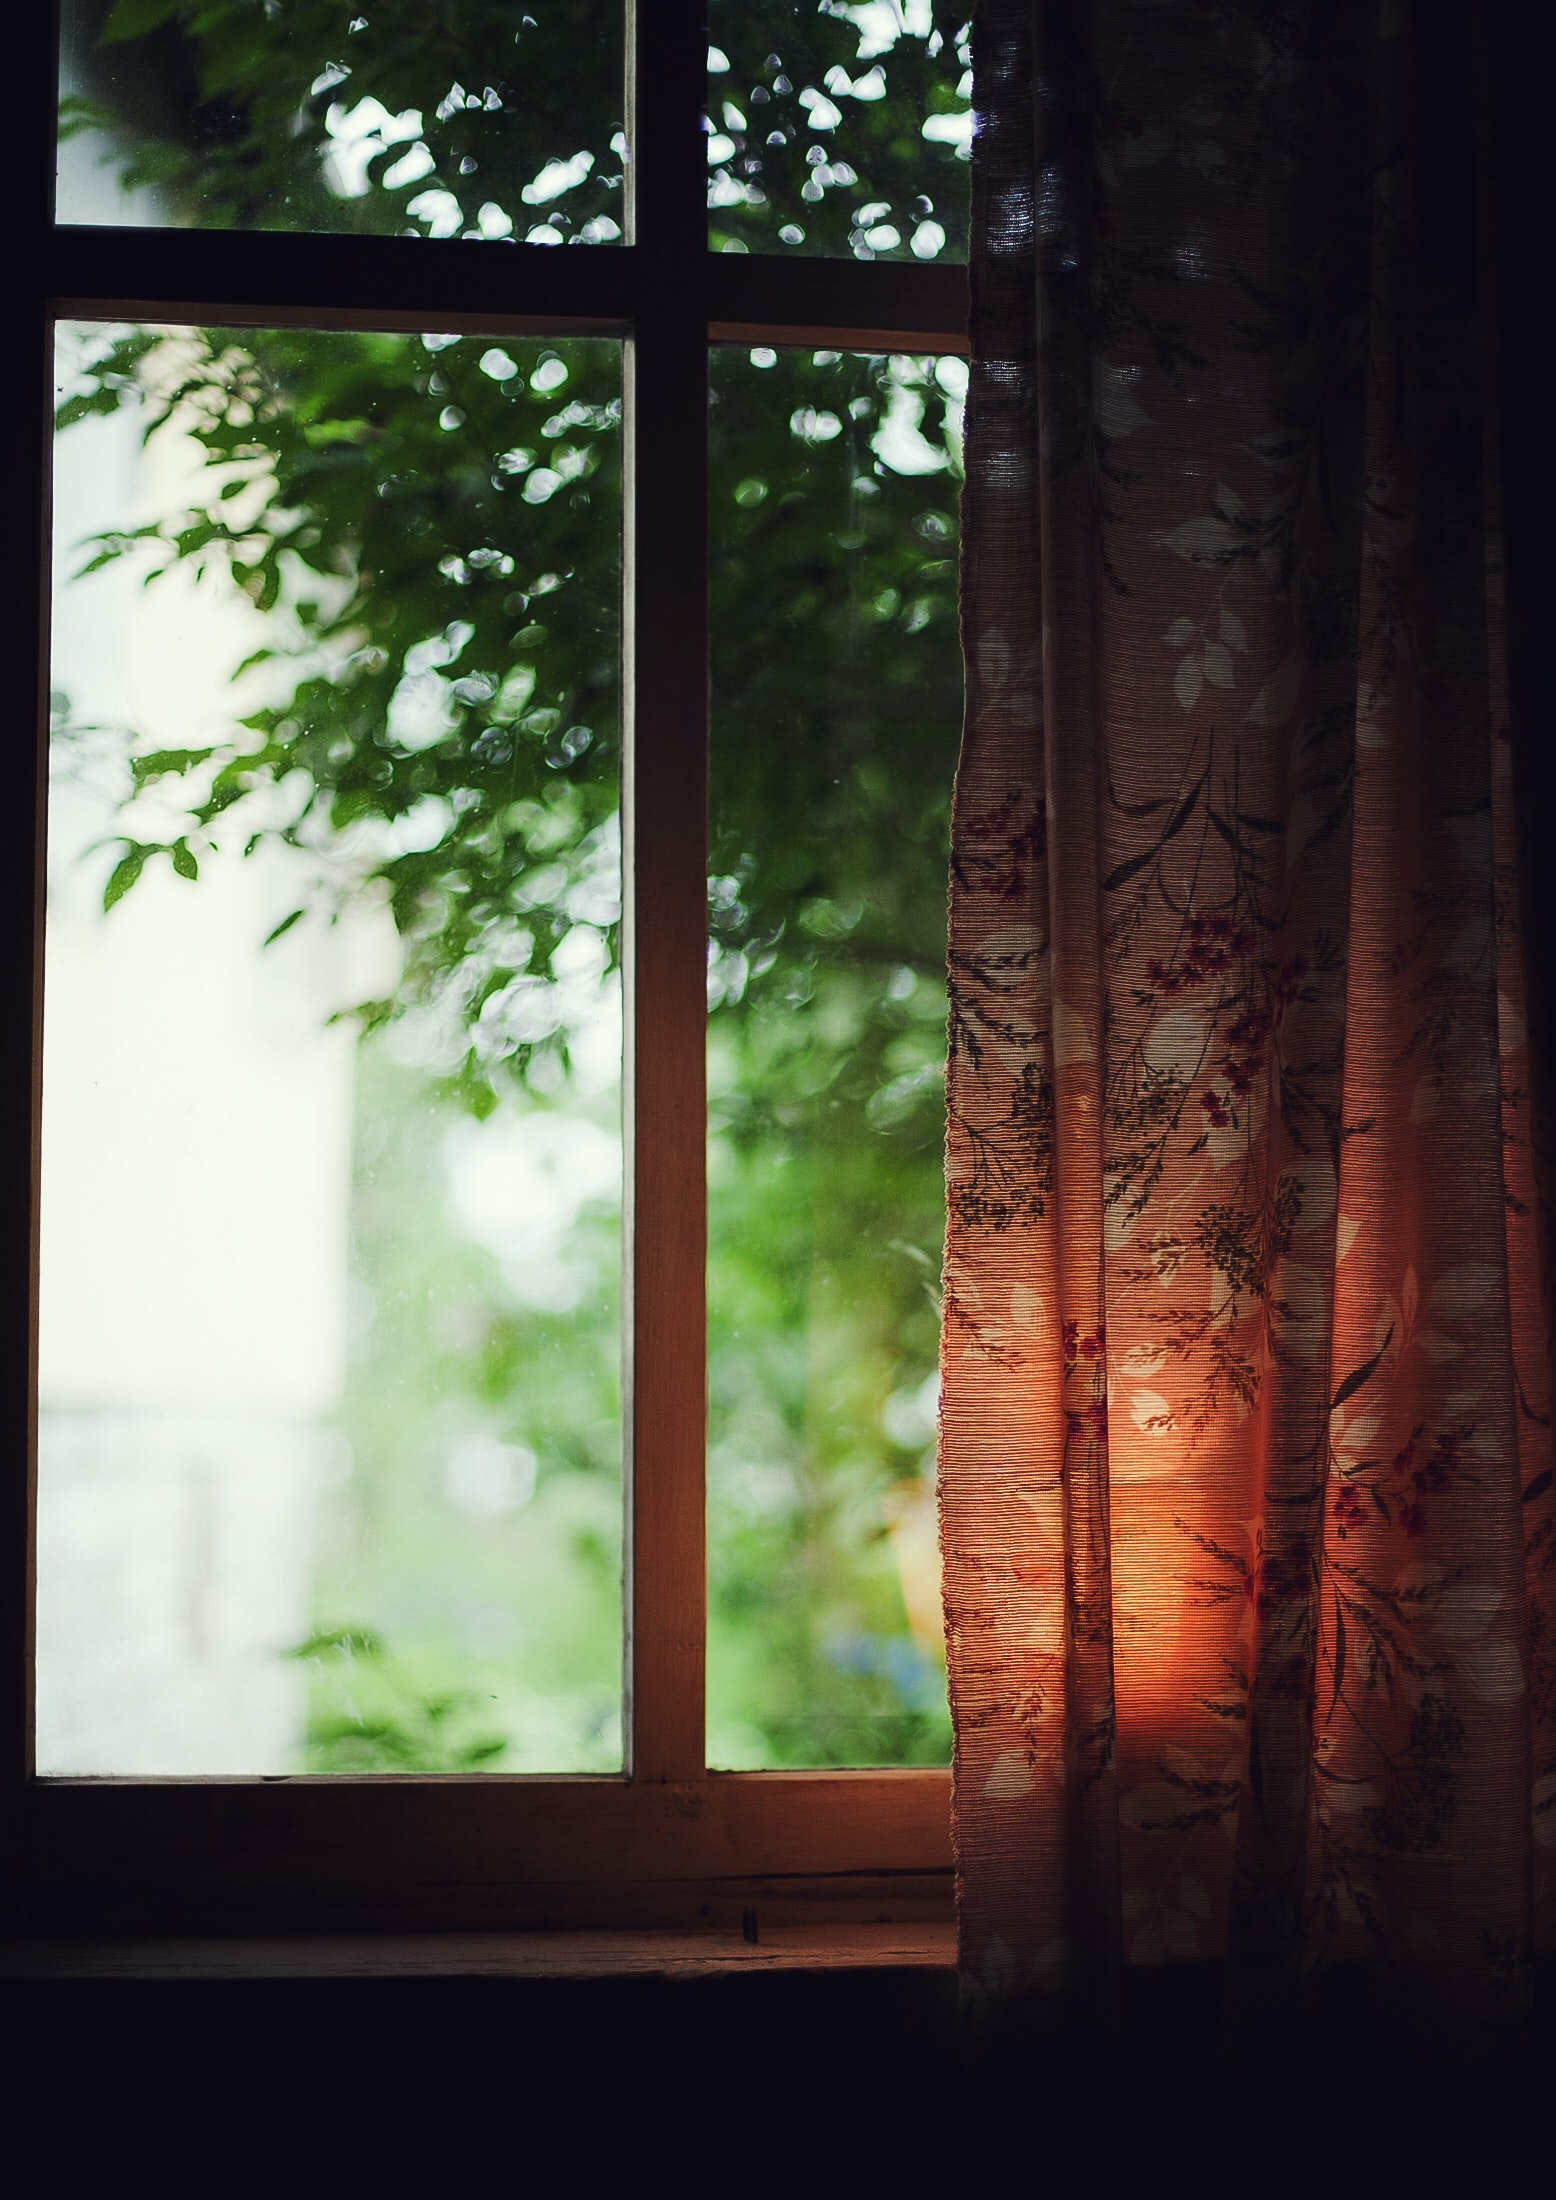 brown and black floral curtains near green leafed trees